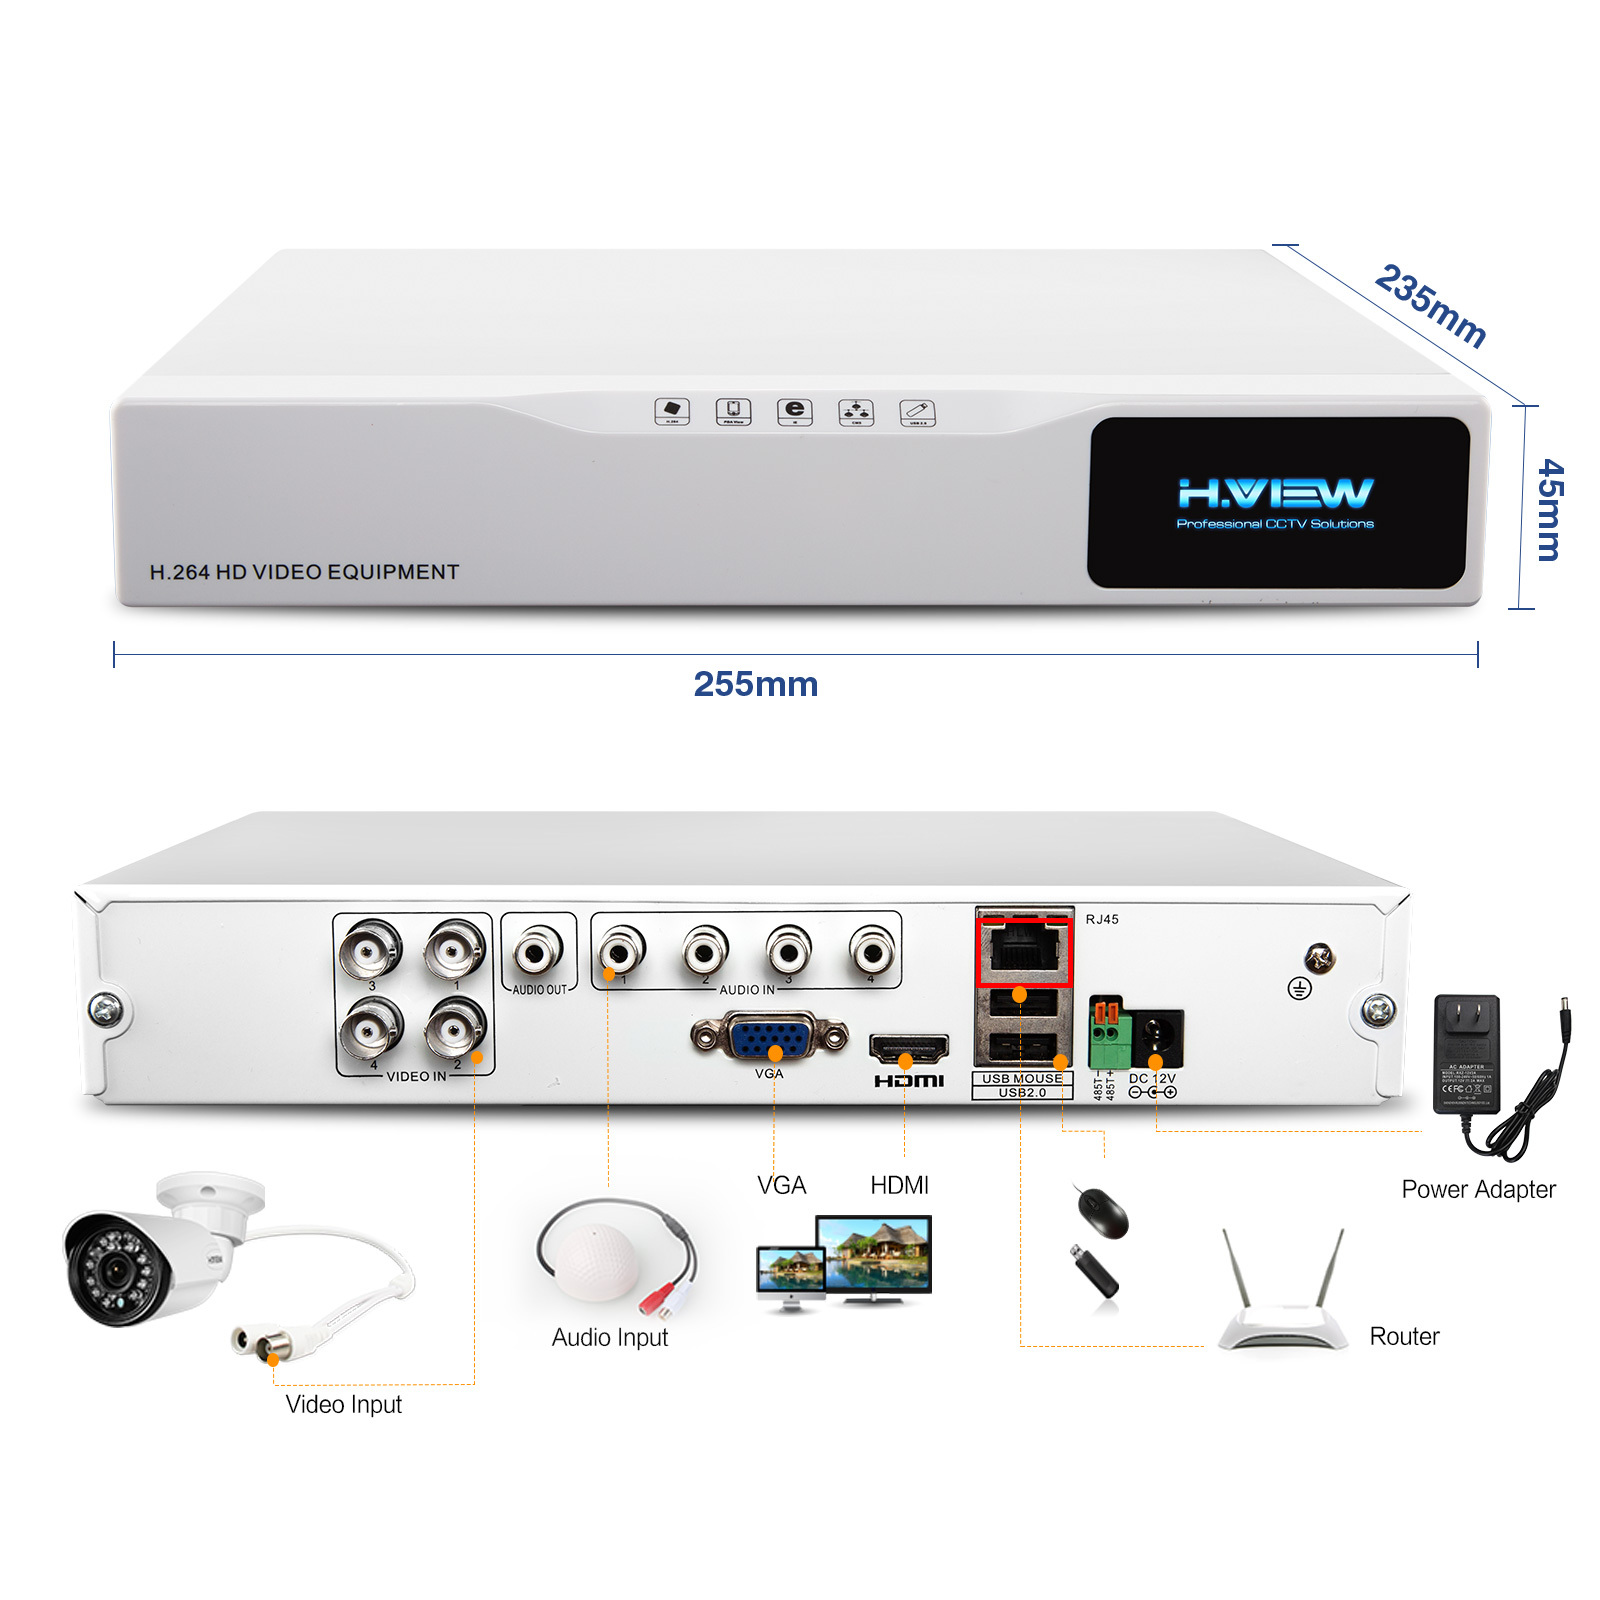 Hew 720p hd home cctv camera system 1tb hdd 4 channel 720p ahd hew 720p hd home cctv camera system 1tb hdd 4 channel 72 cheapraybanclubmaster Images